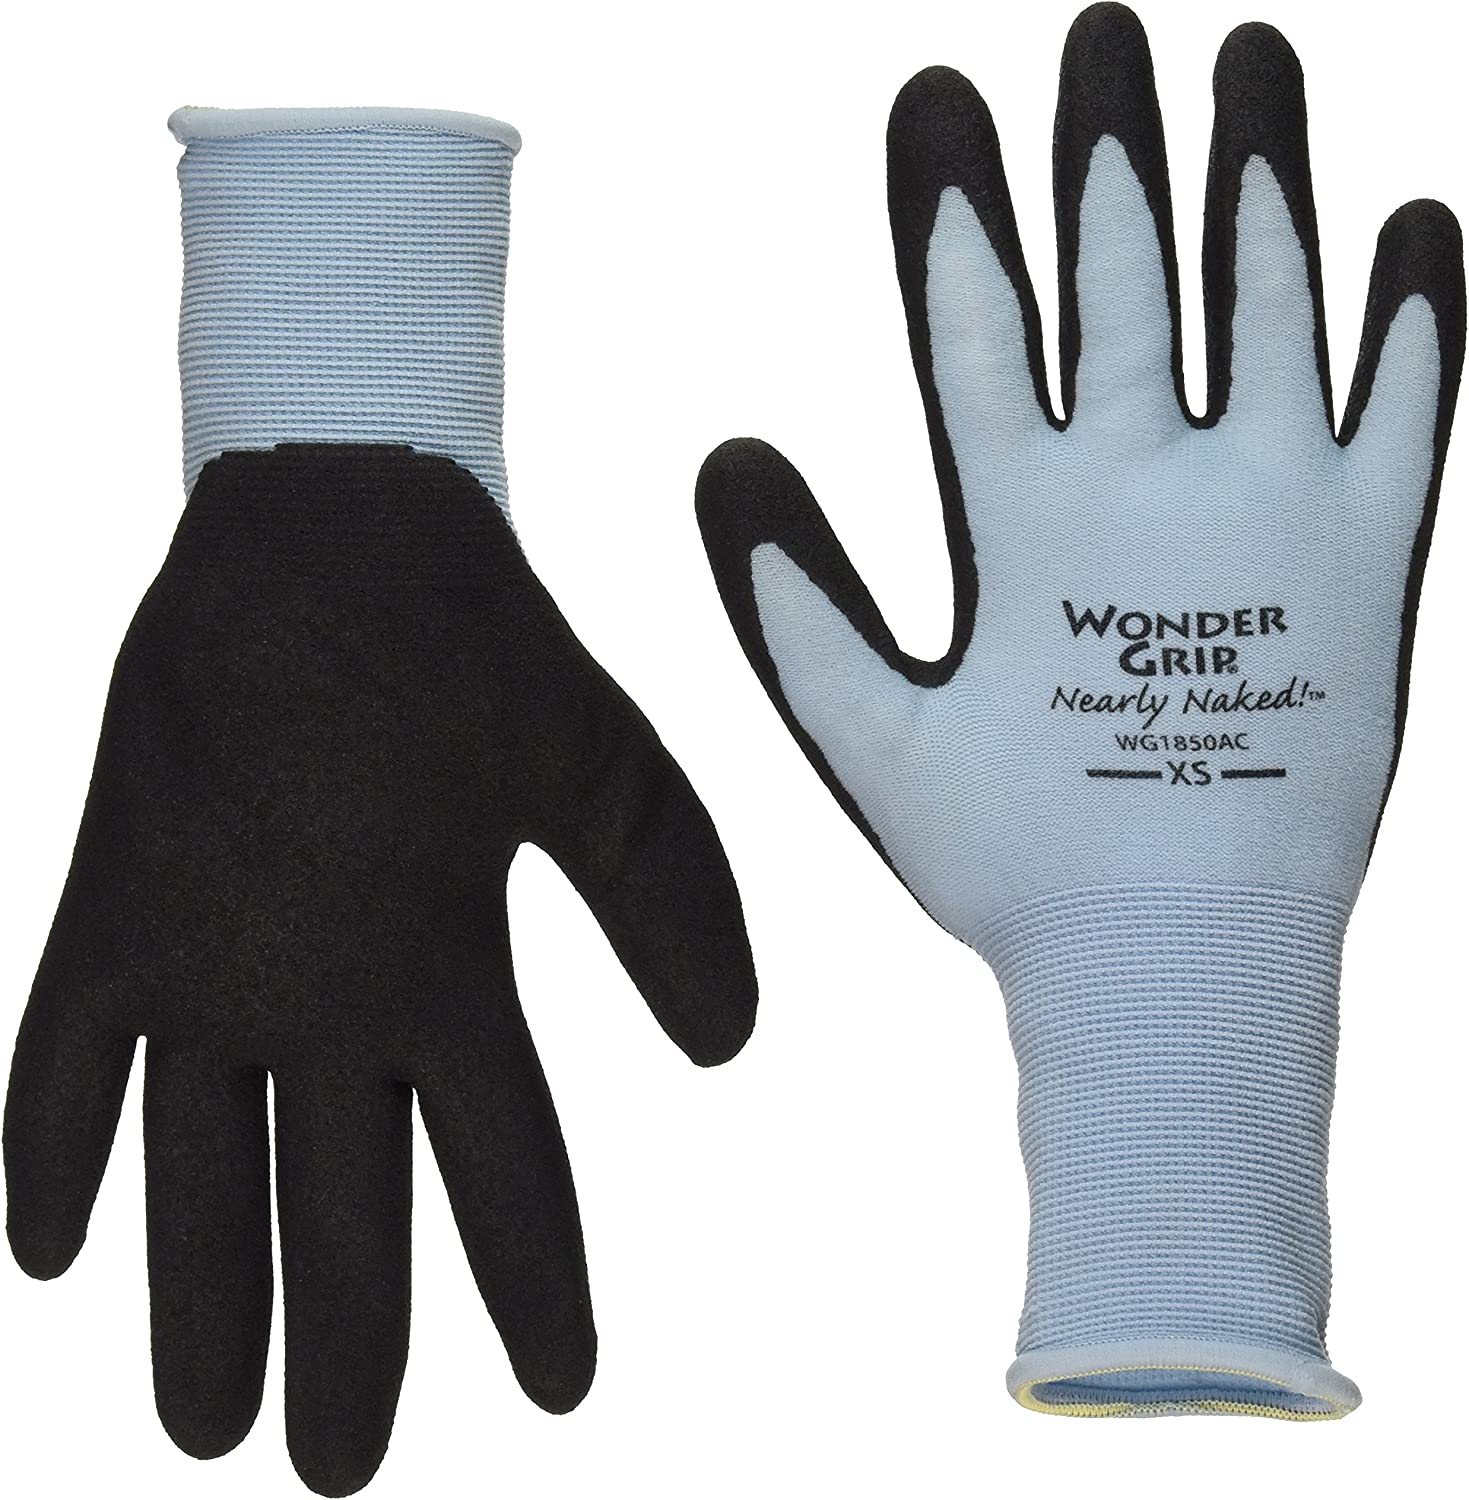 Wonder Grip Nearly Naked Gloves, X-Small, Assorted Colors